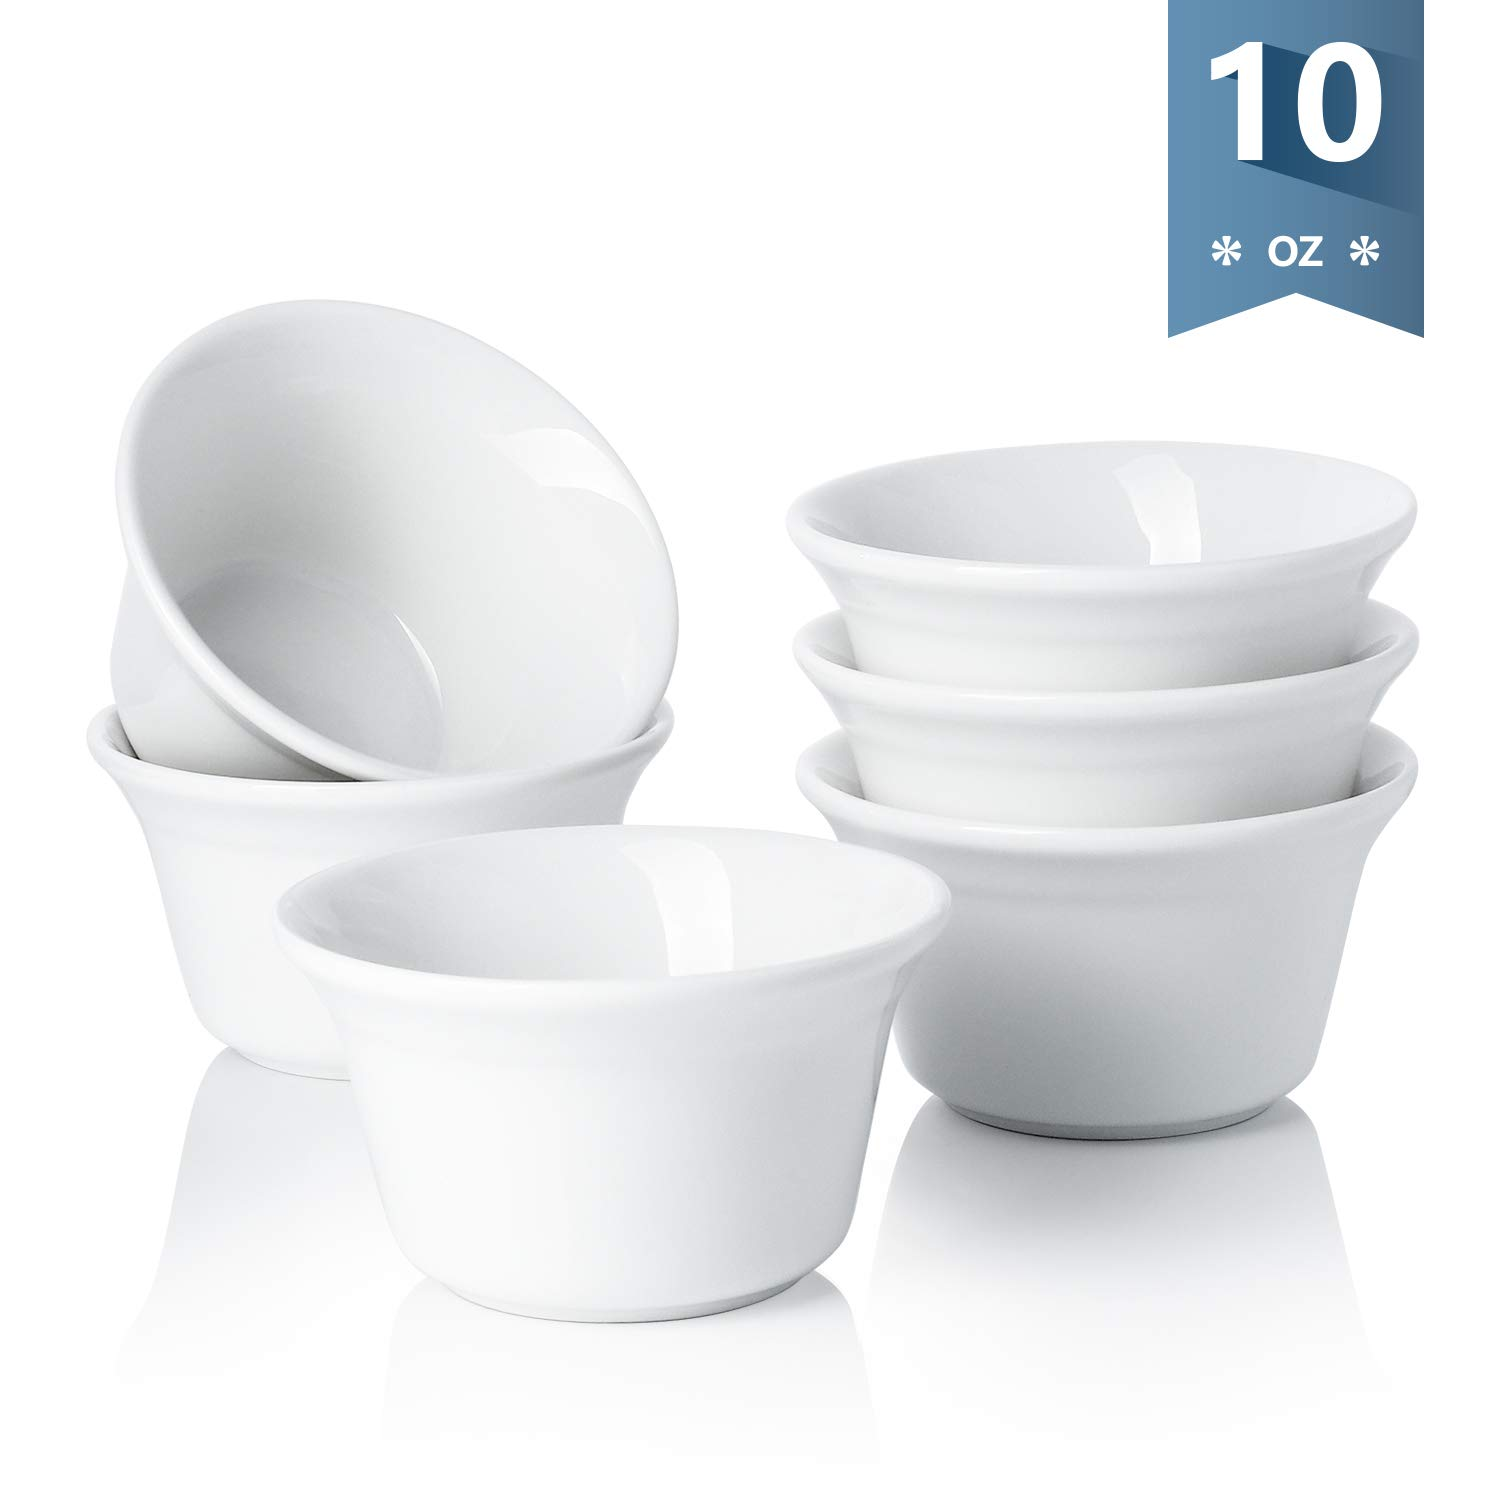 Sweese 512.001 Porcelain Souffle Dish 10 Ounce Oven Safe Ramekins, Set of 6, White by Sweese